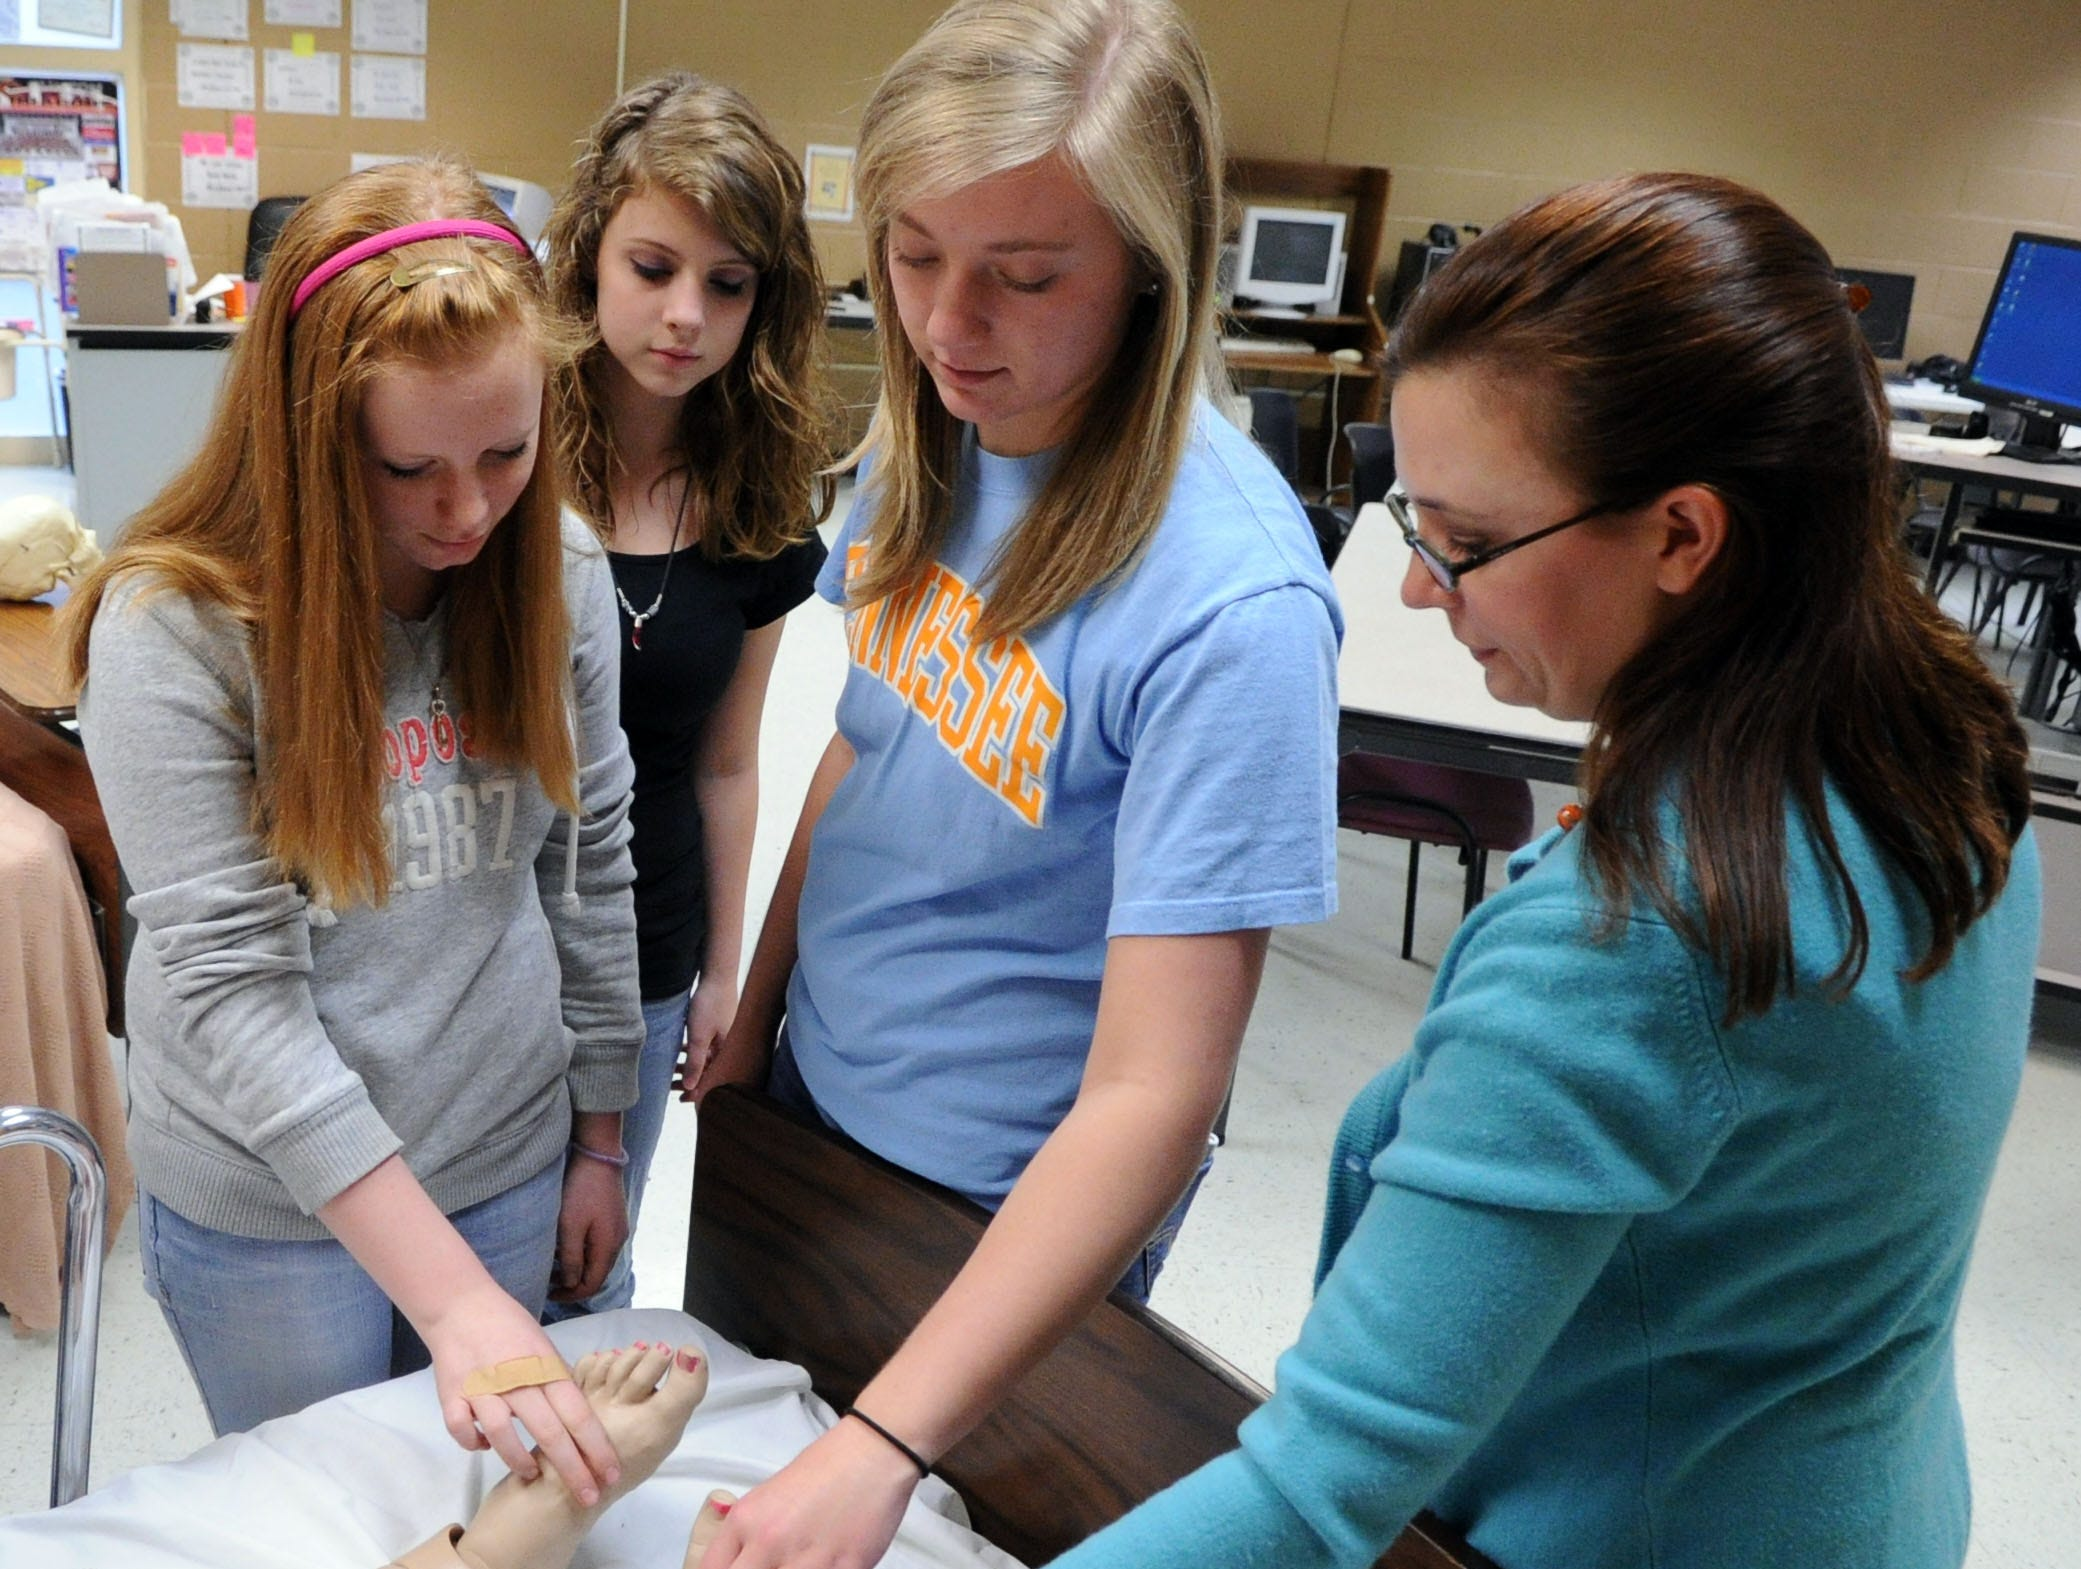 Kayla Norman, Morgan Russell and Kennedy Hancock, left to right, look on as teacher April Freeman gives instructions in her medical therapudics class at Clinton High School in Clinton, Tenn., March 31, 2011.